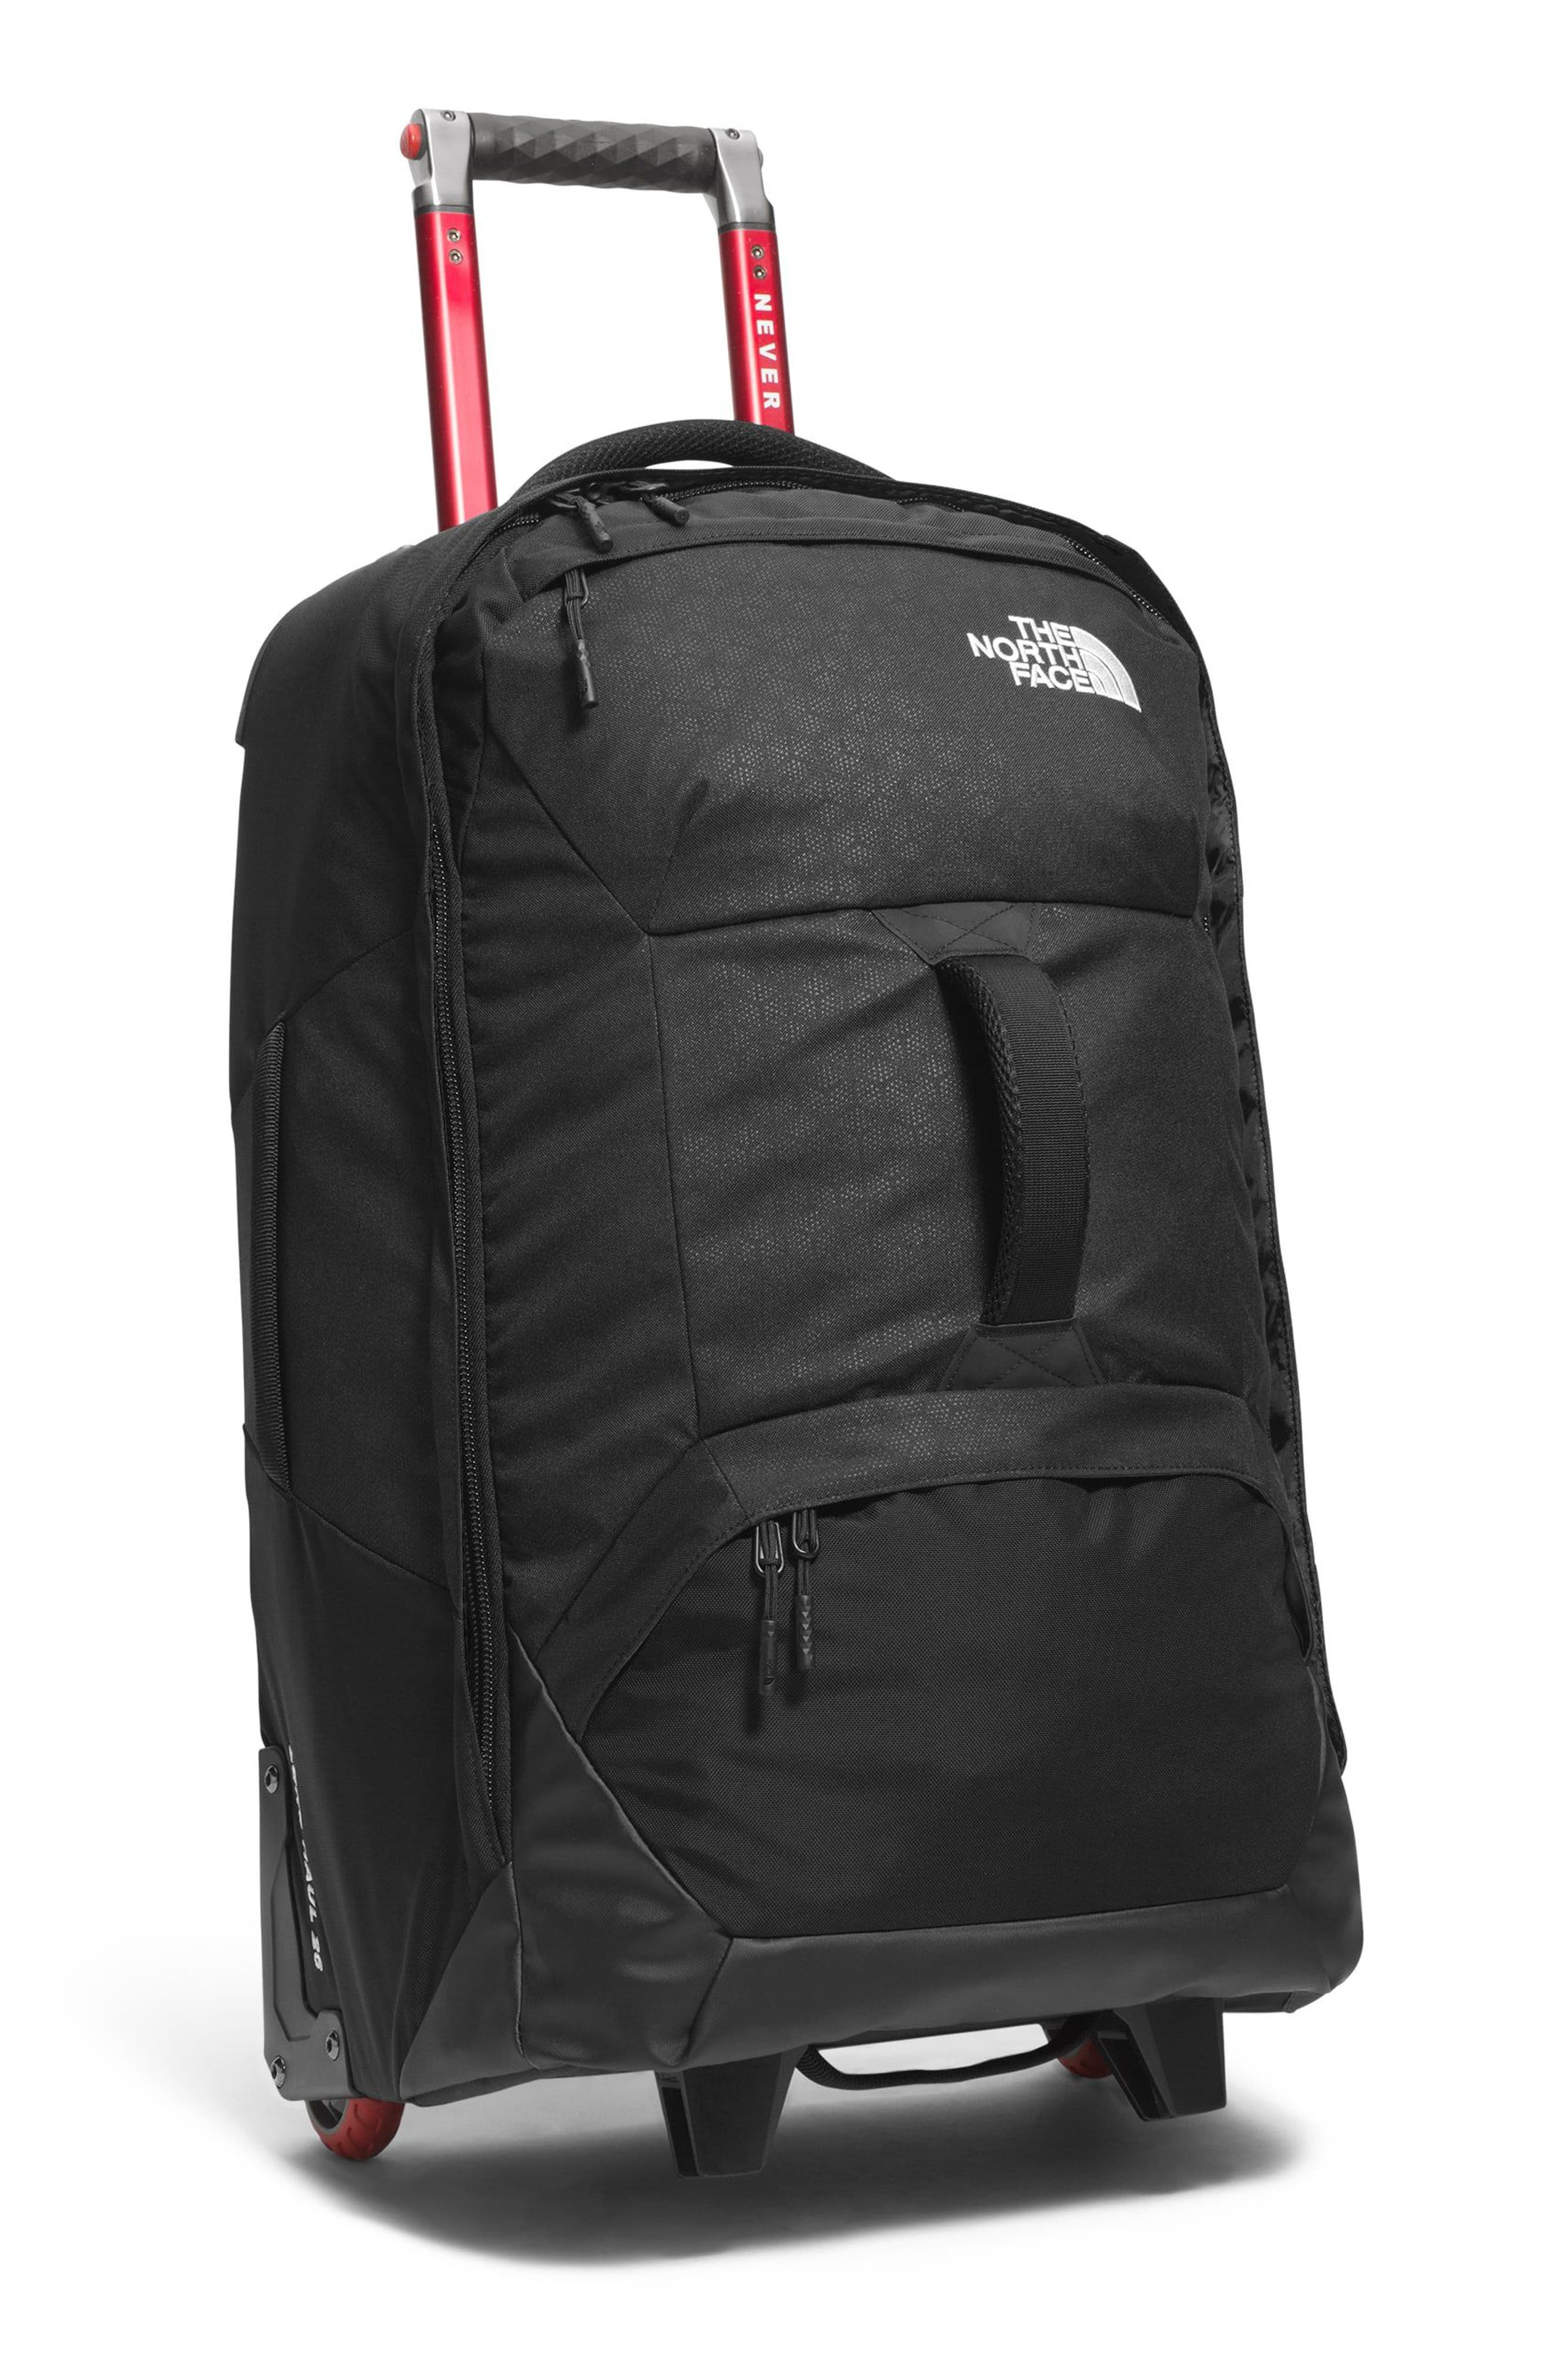 The North Face Long Haul 26 Inch Rolling Duffel Bag